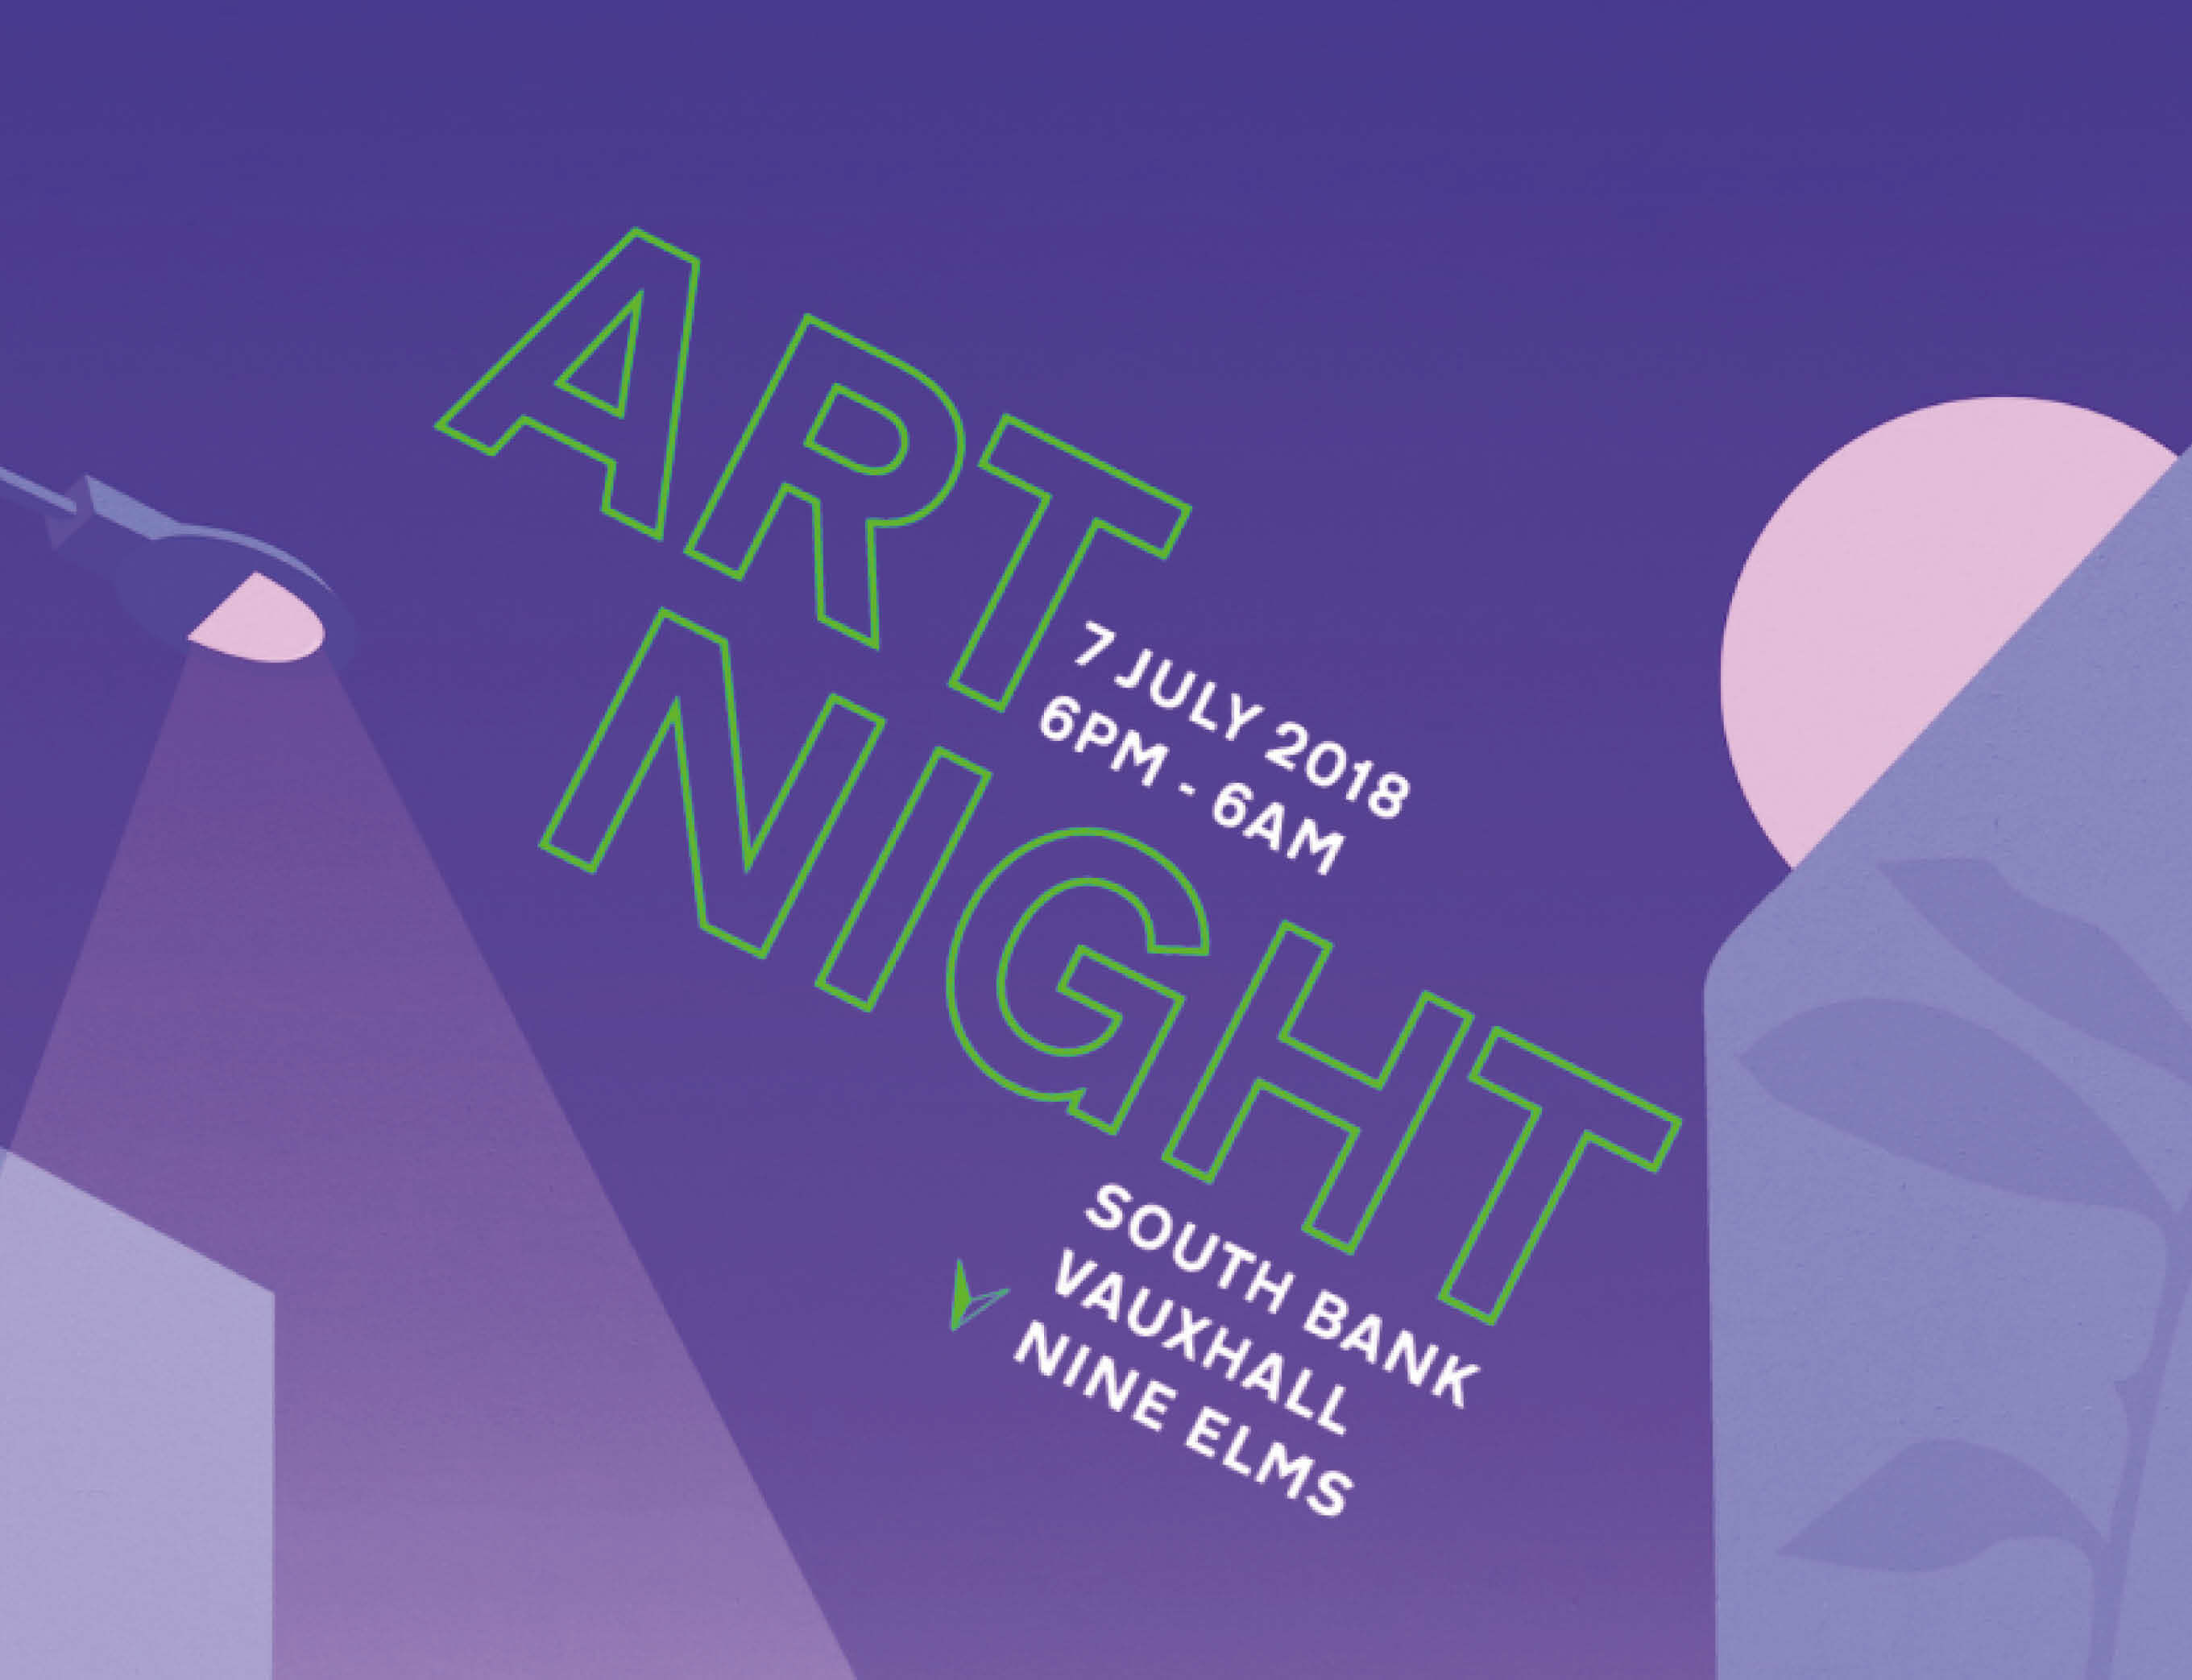 Art night